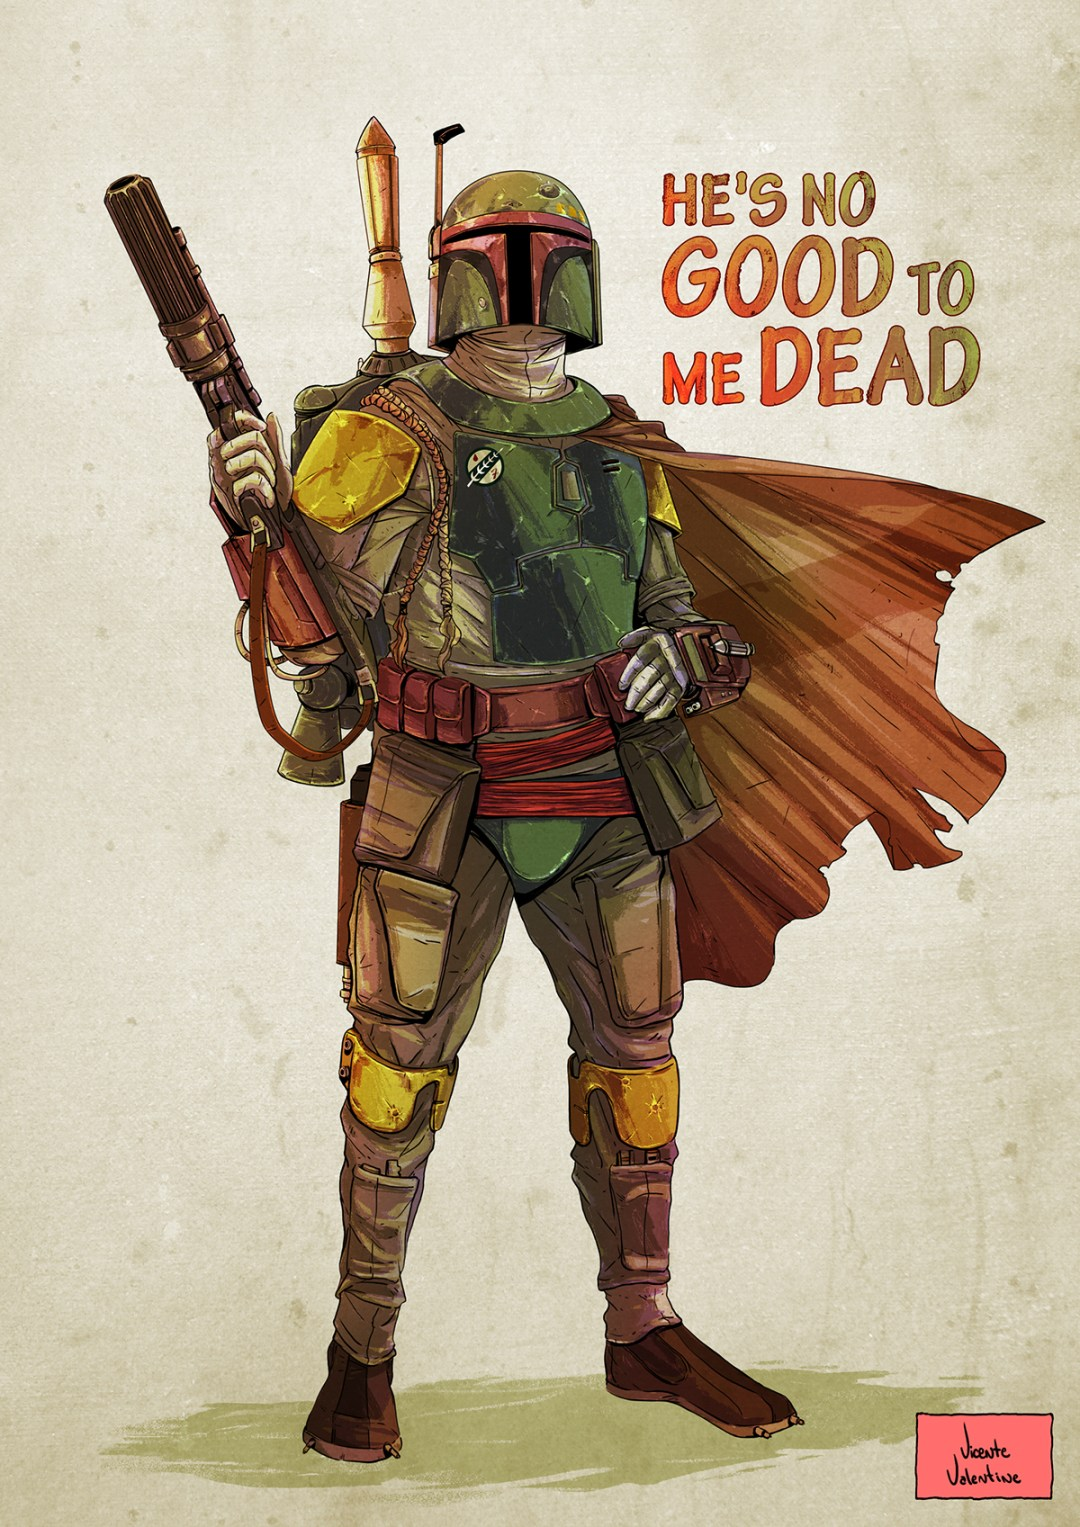 He's No Good To Me Dead by Vicente Valentine